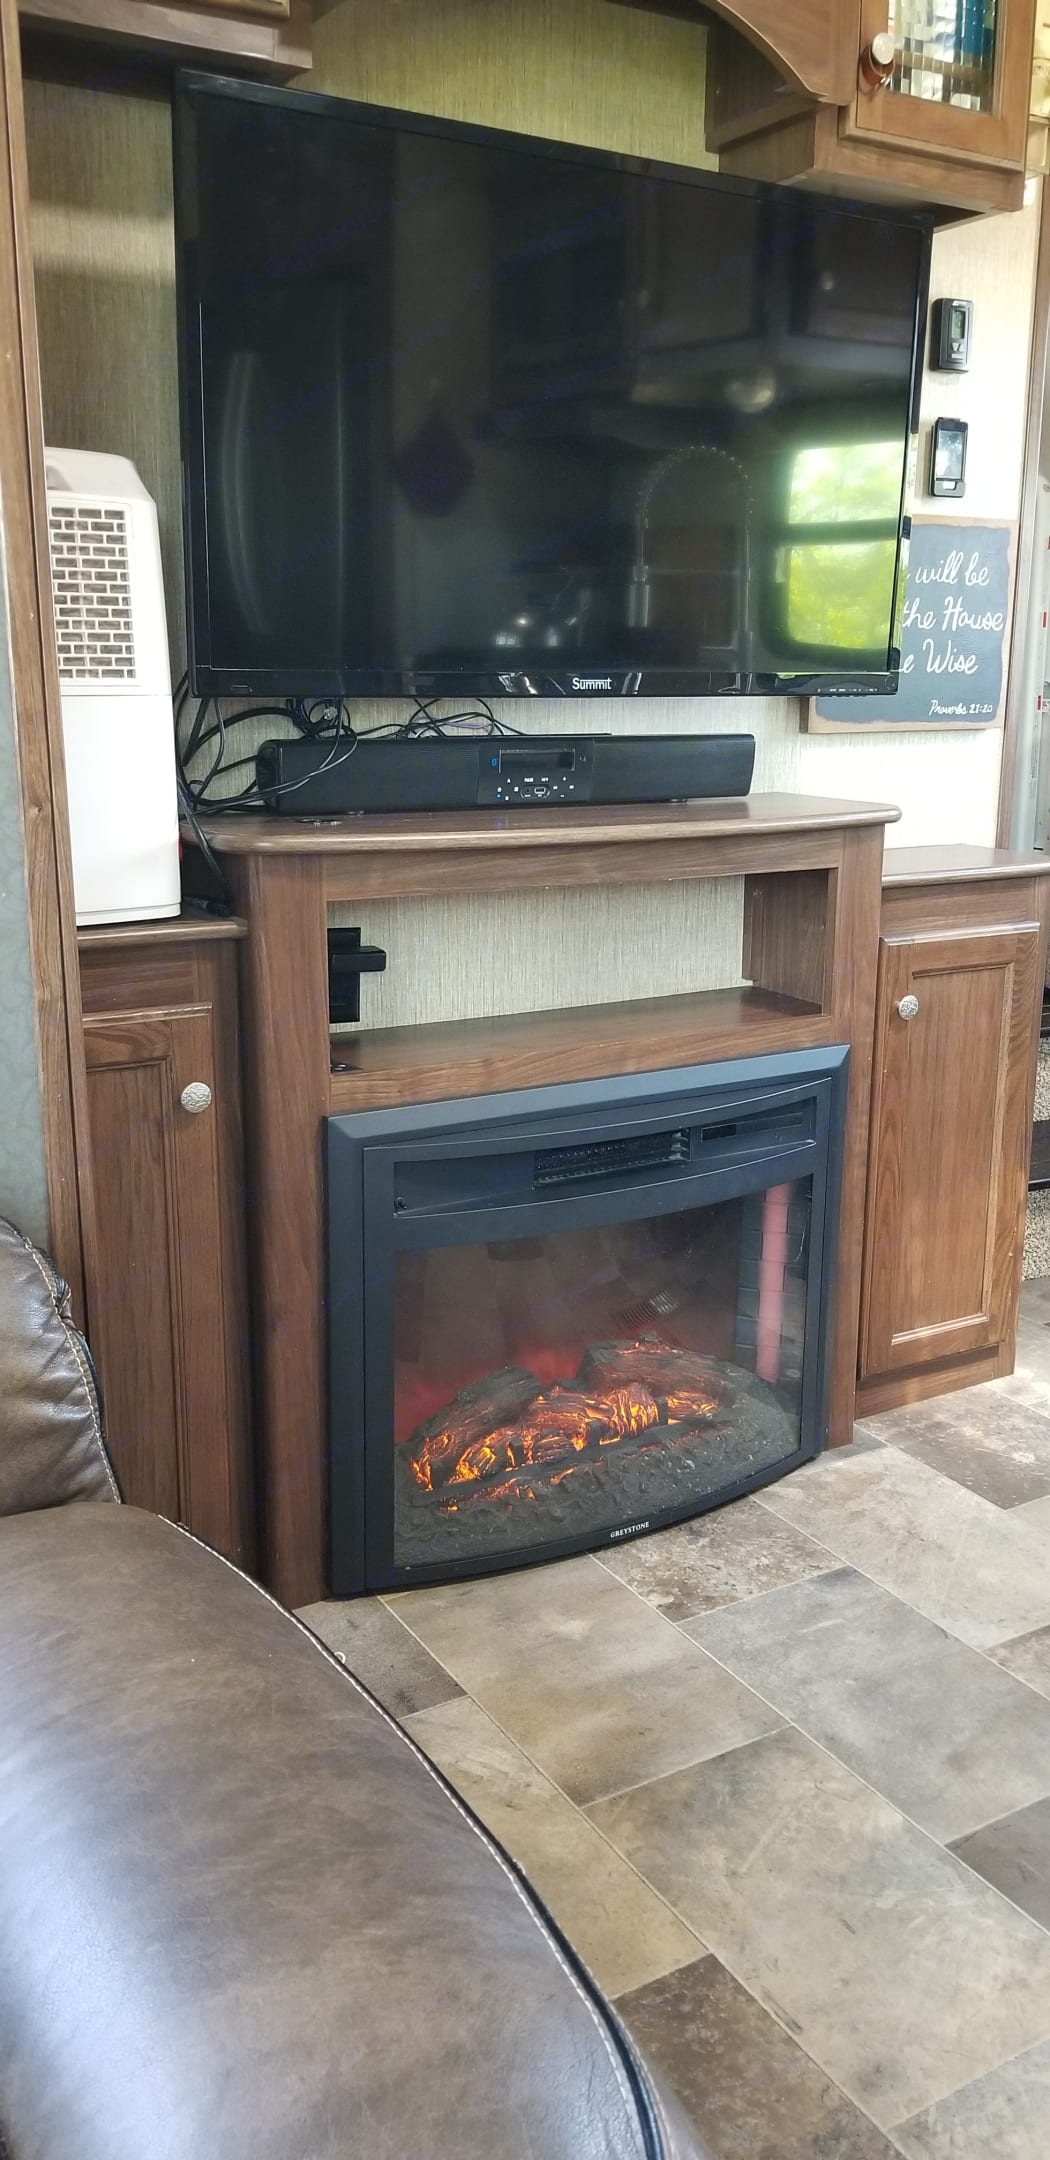 Not just for looks, this fireplace can heat the camper comfortably on cold nights, and makes a cozy gathering place!. Keystone Sprinter 2018